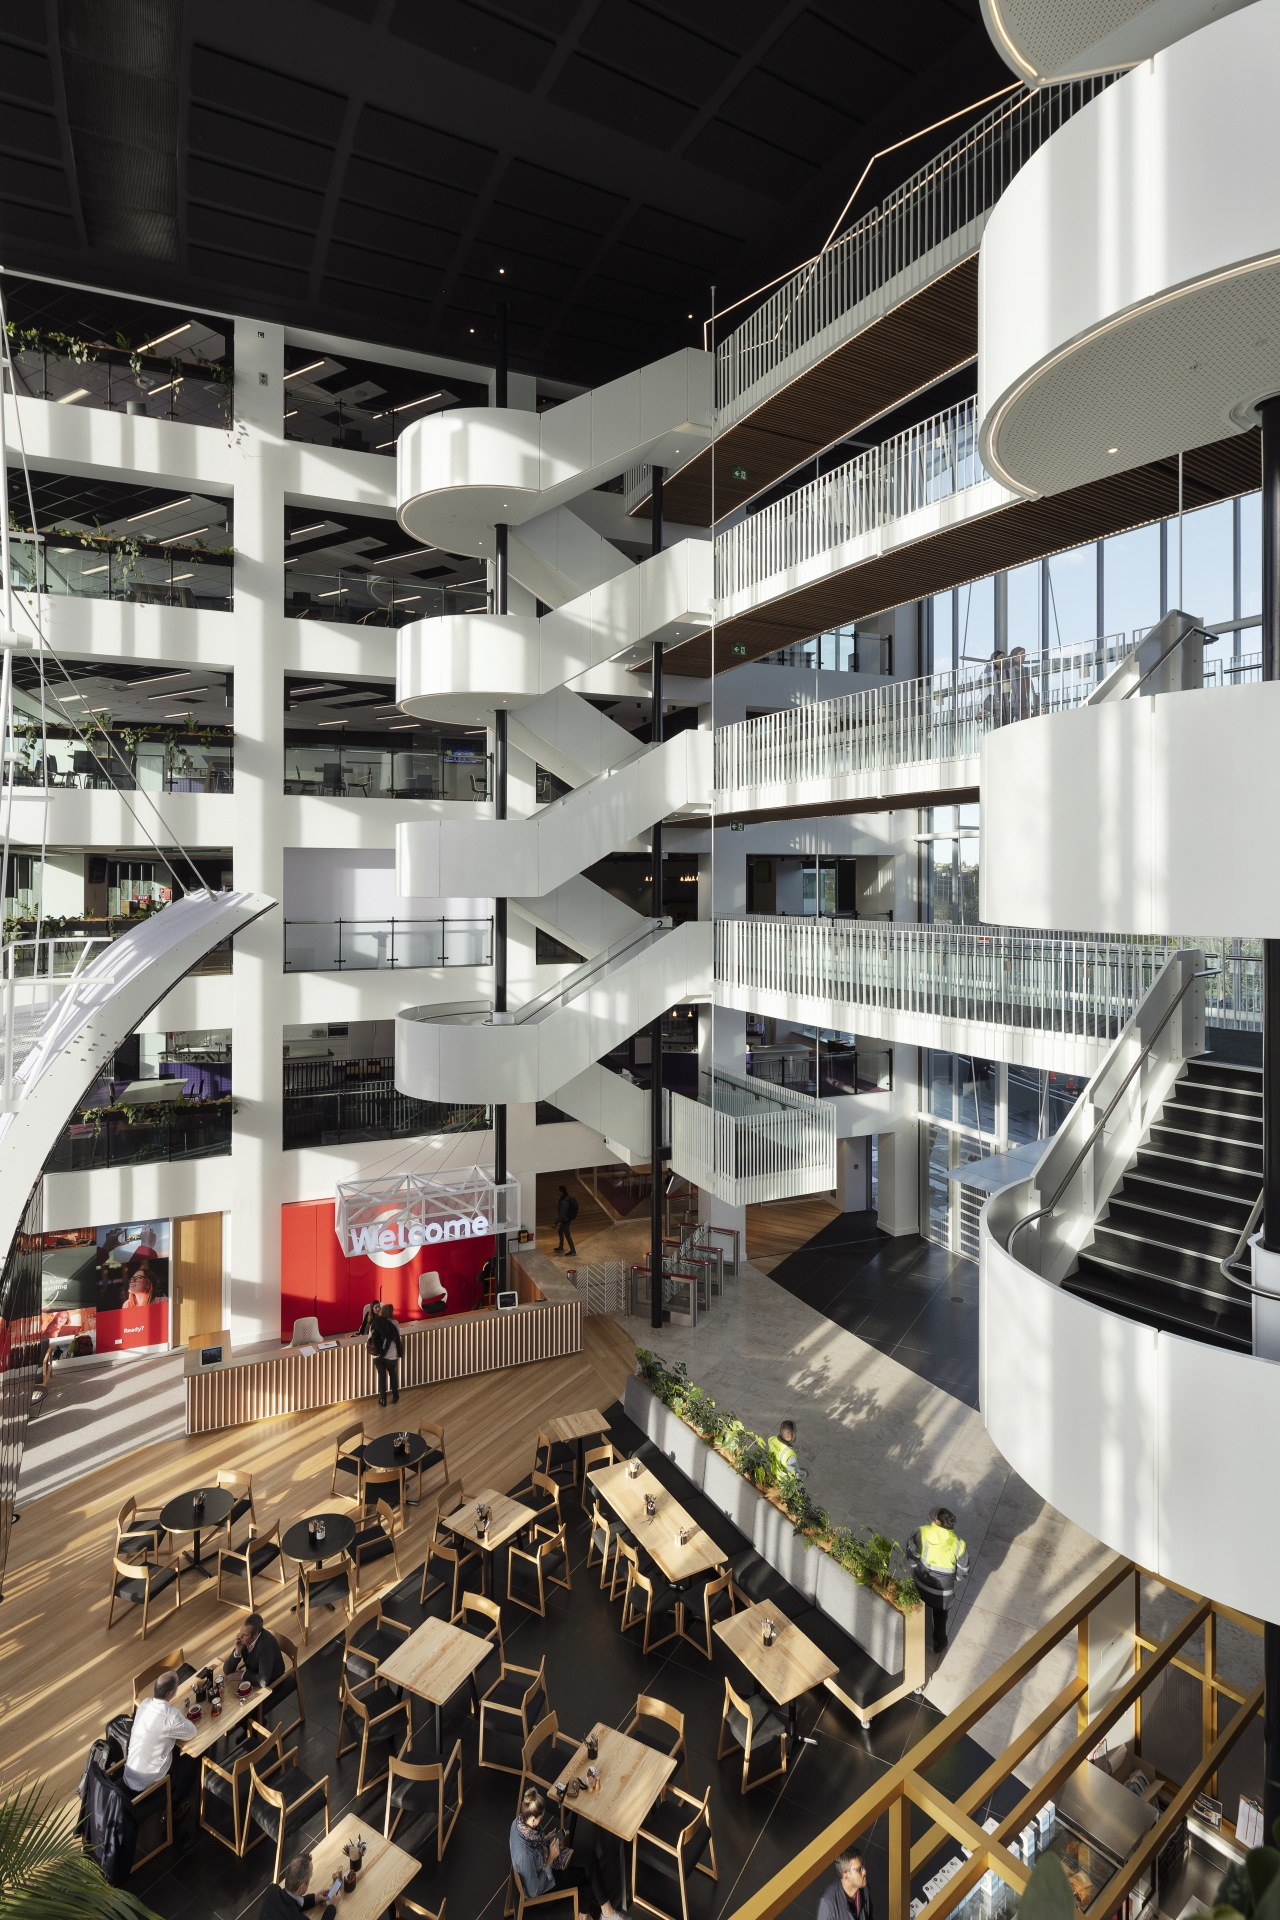 For the new Vodafone InnoV8 building, timber was architecture, building, condominium, corporate headquarters, headquarters, interior design, lobby, metropolis, metropolitan area, mixed use, black, white